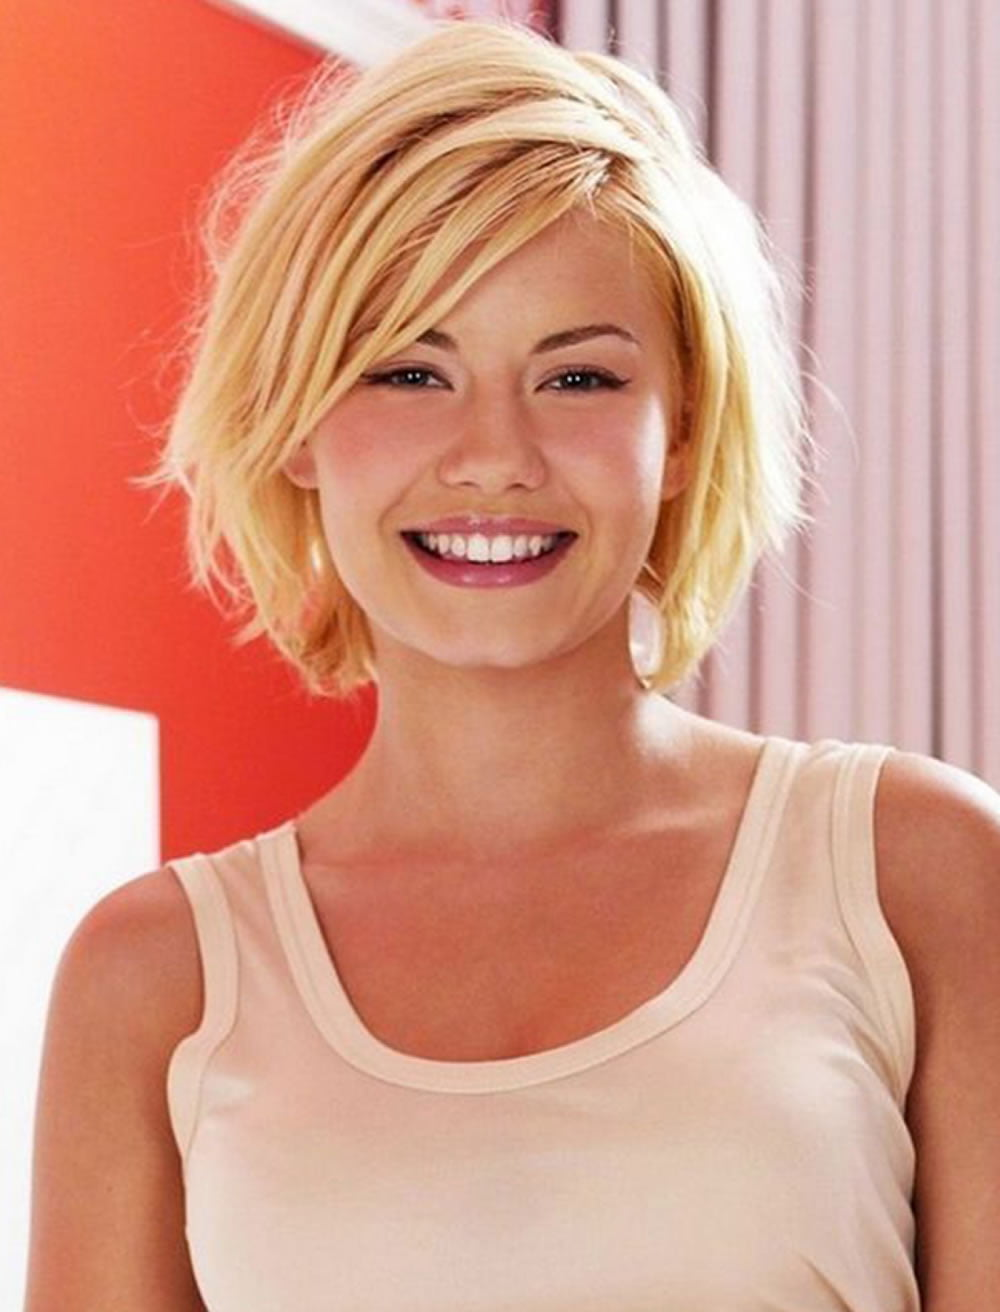 The Best 30 Short Bob Haircuts  2018 Short Hairstyles for Women  HAIRSTYLES